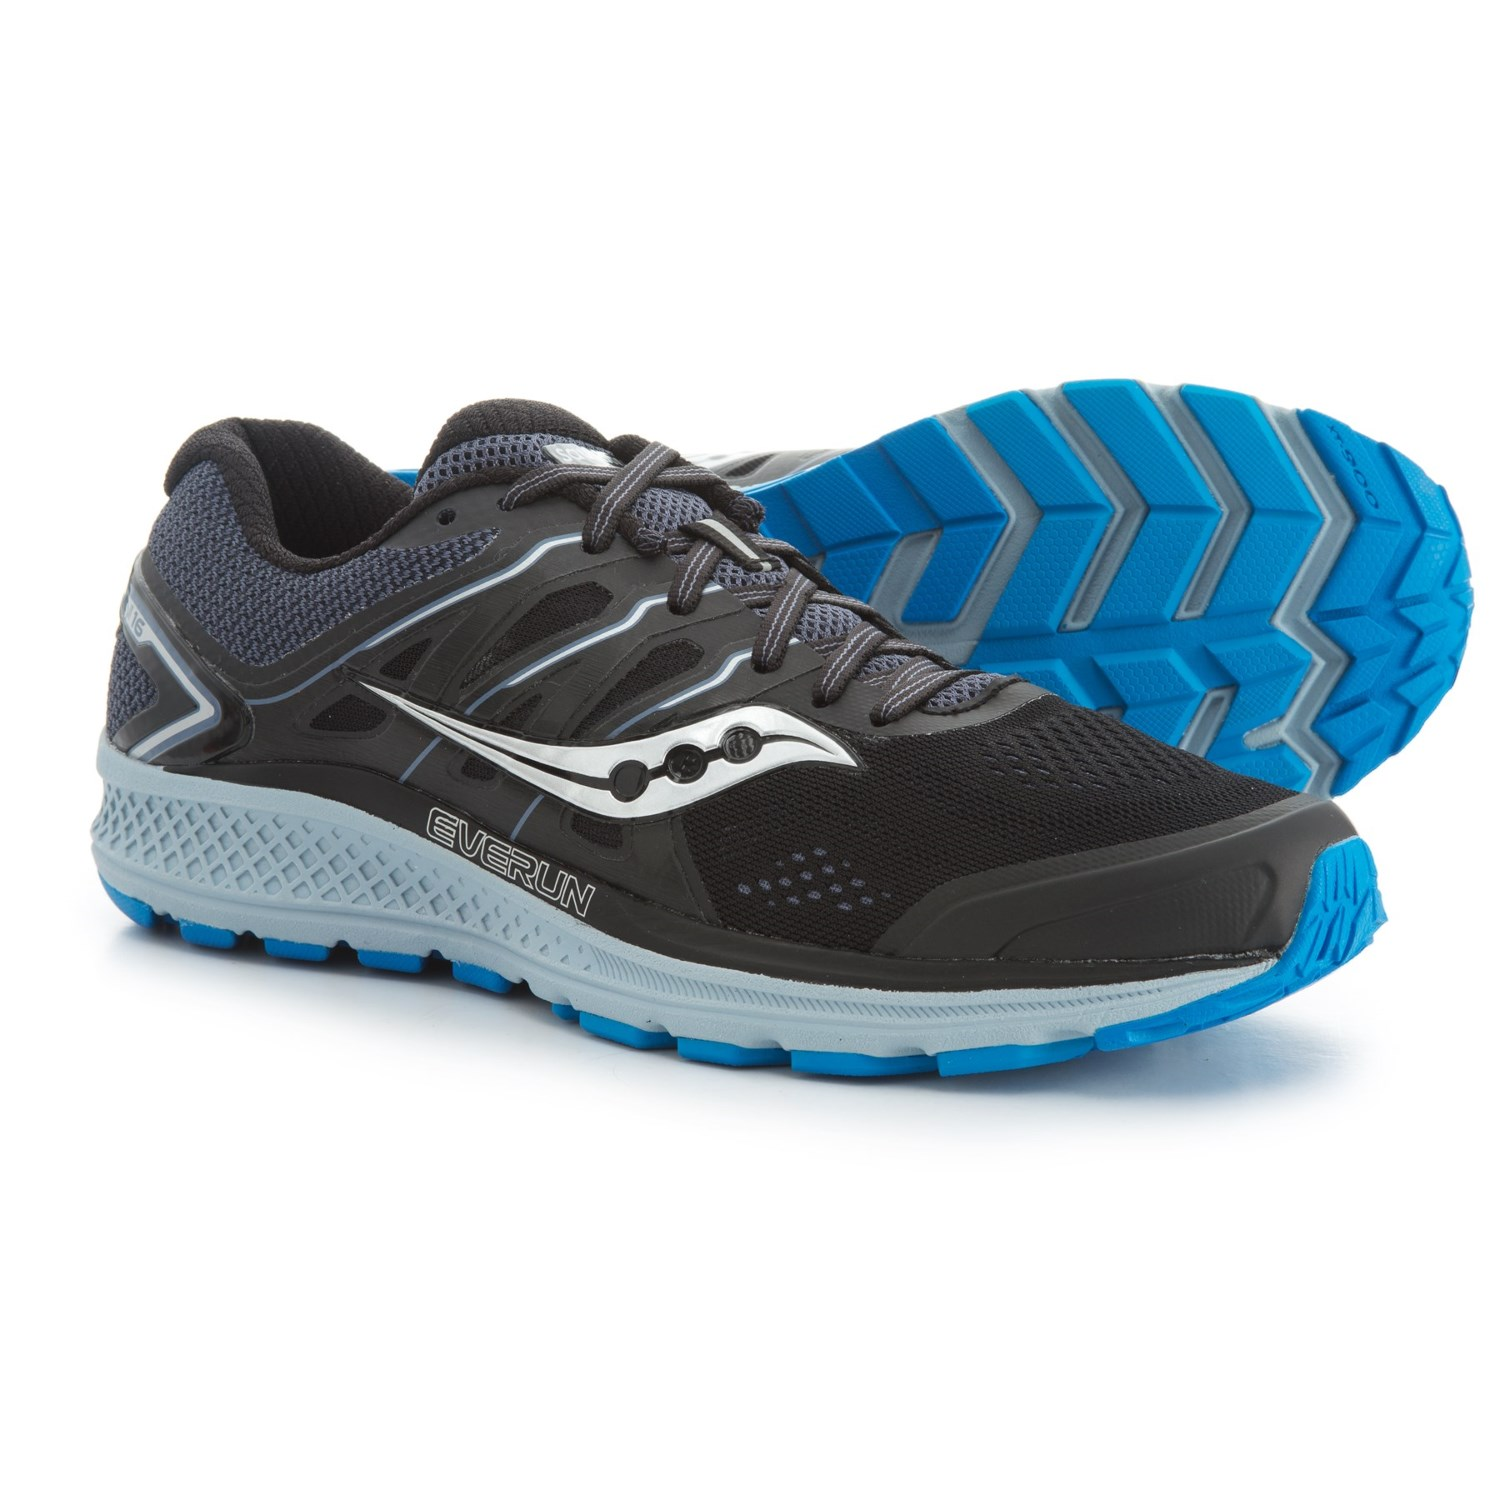 f1752bfc453e Saucony Omni 16 Running Shoes (For Men) in Black Grey Blue